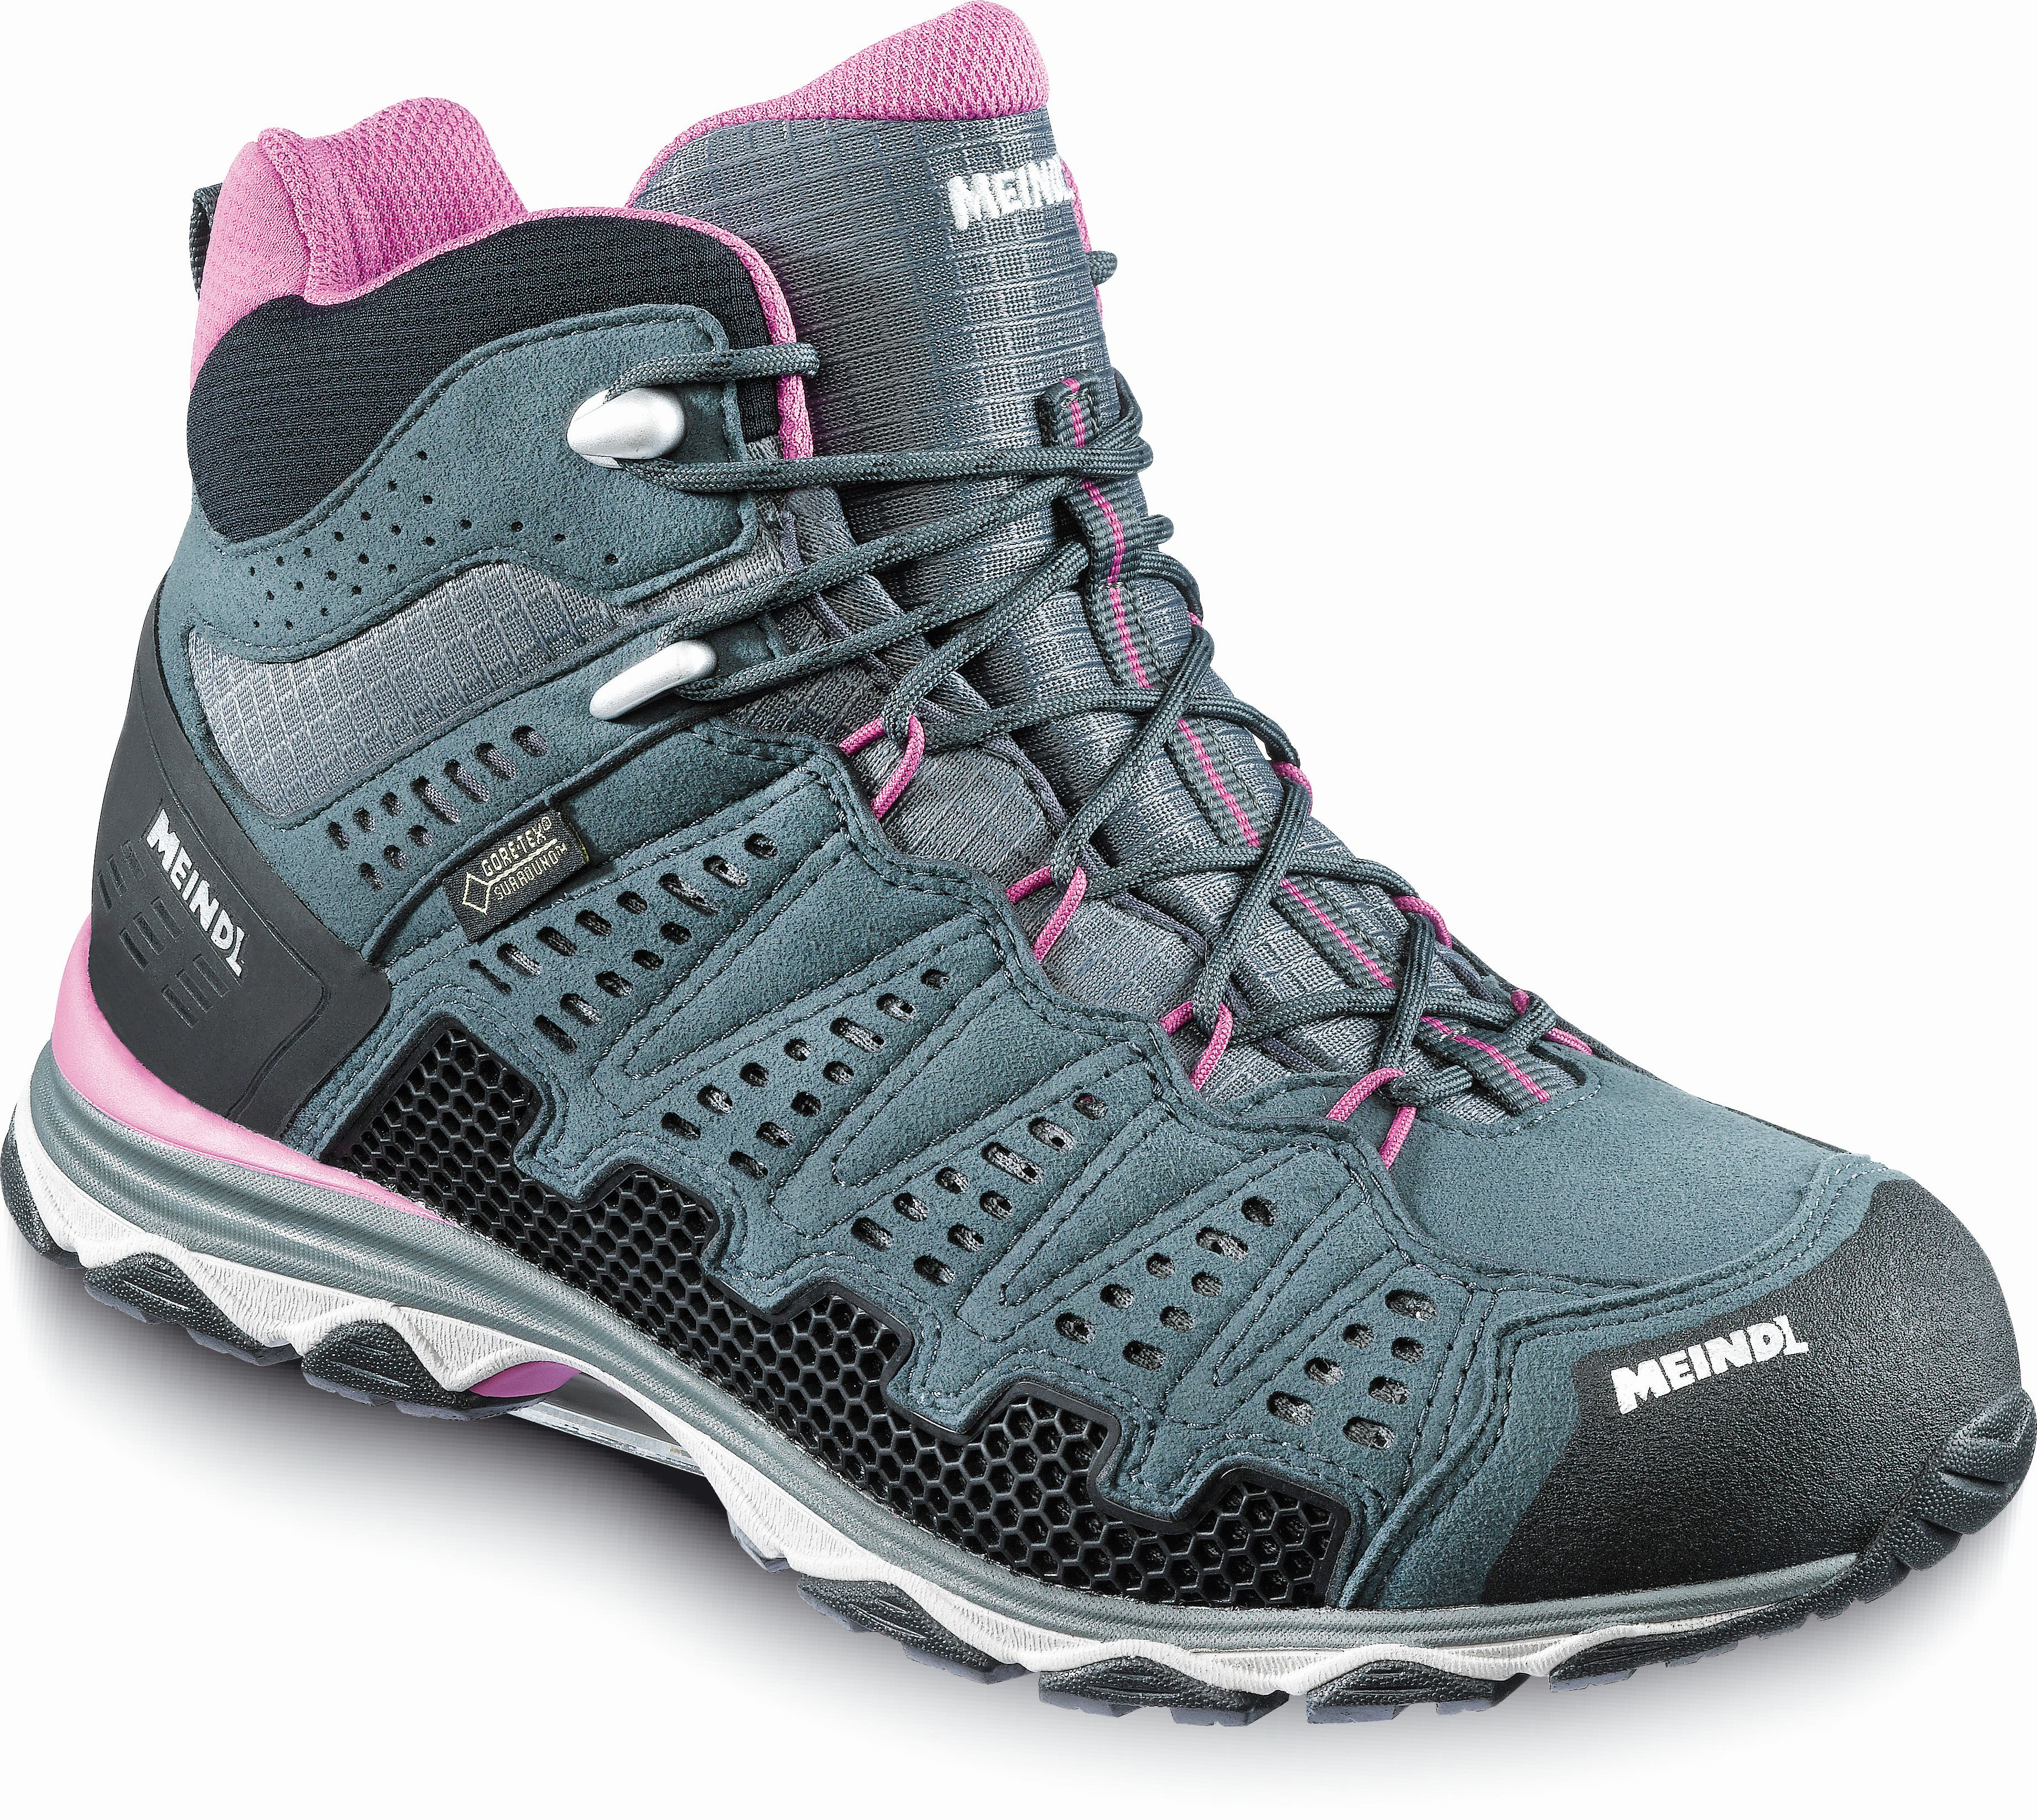 Meindl X-SO 70 Lady Mid GTX violet anthracite 5d656e6162